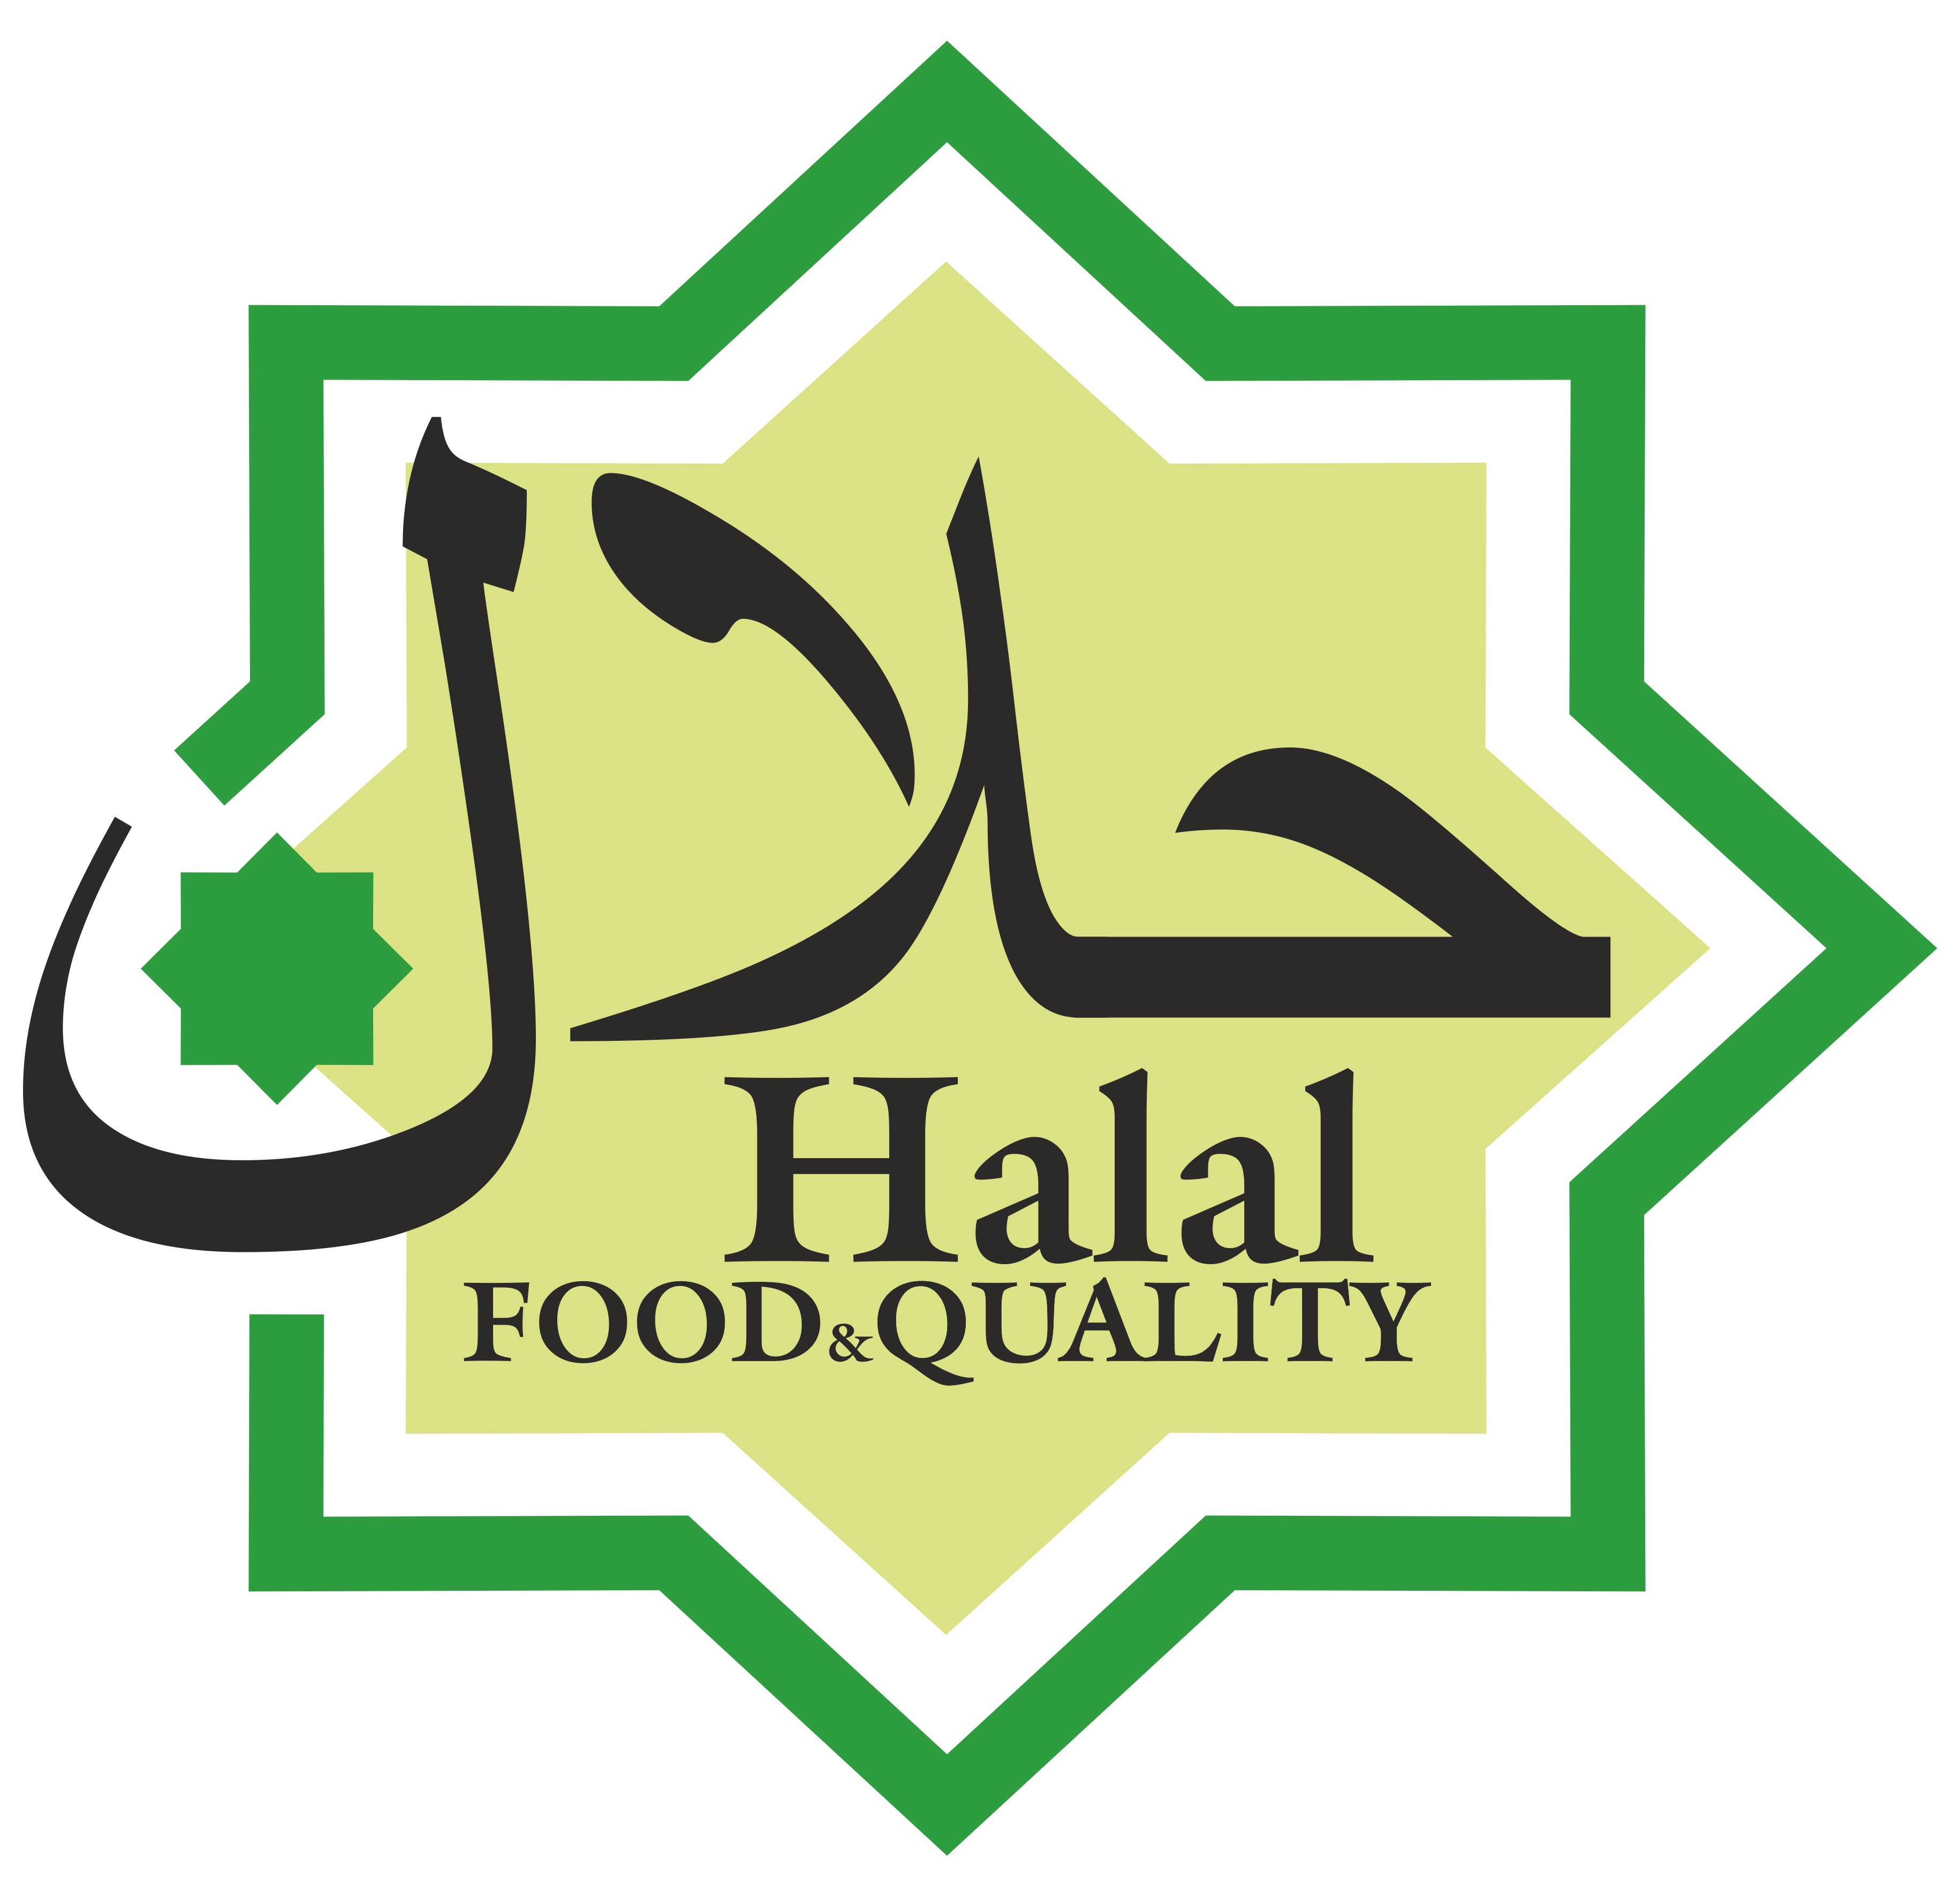 Halal Food and Quality - Spain